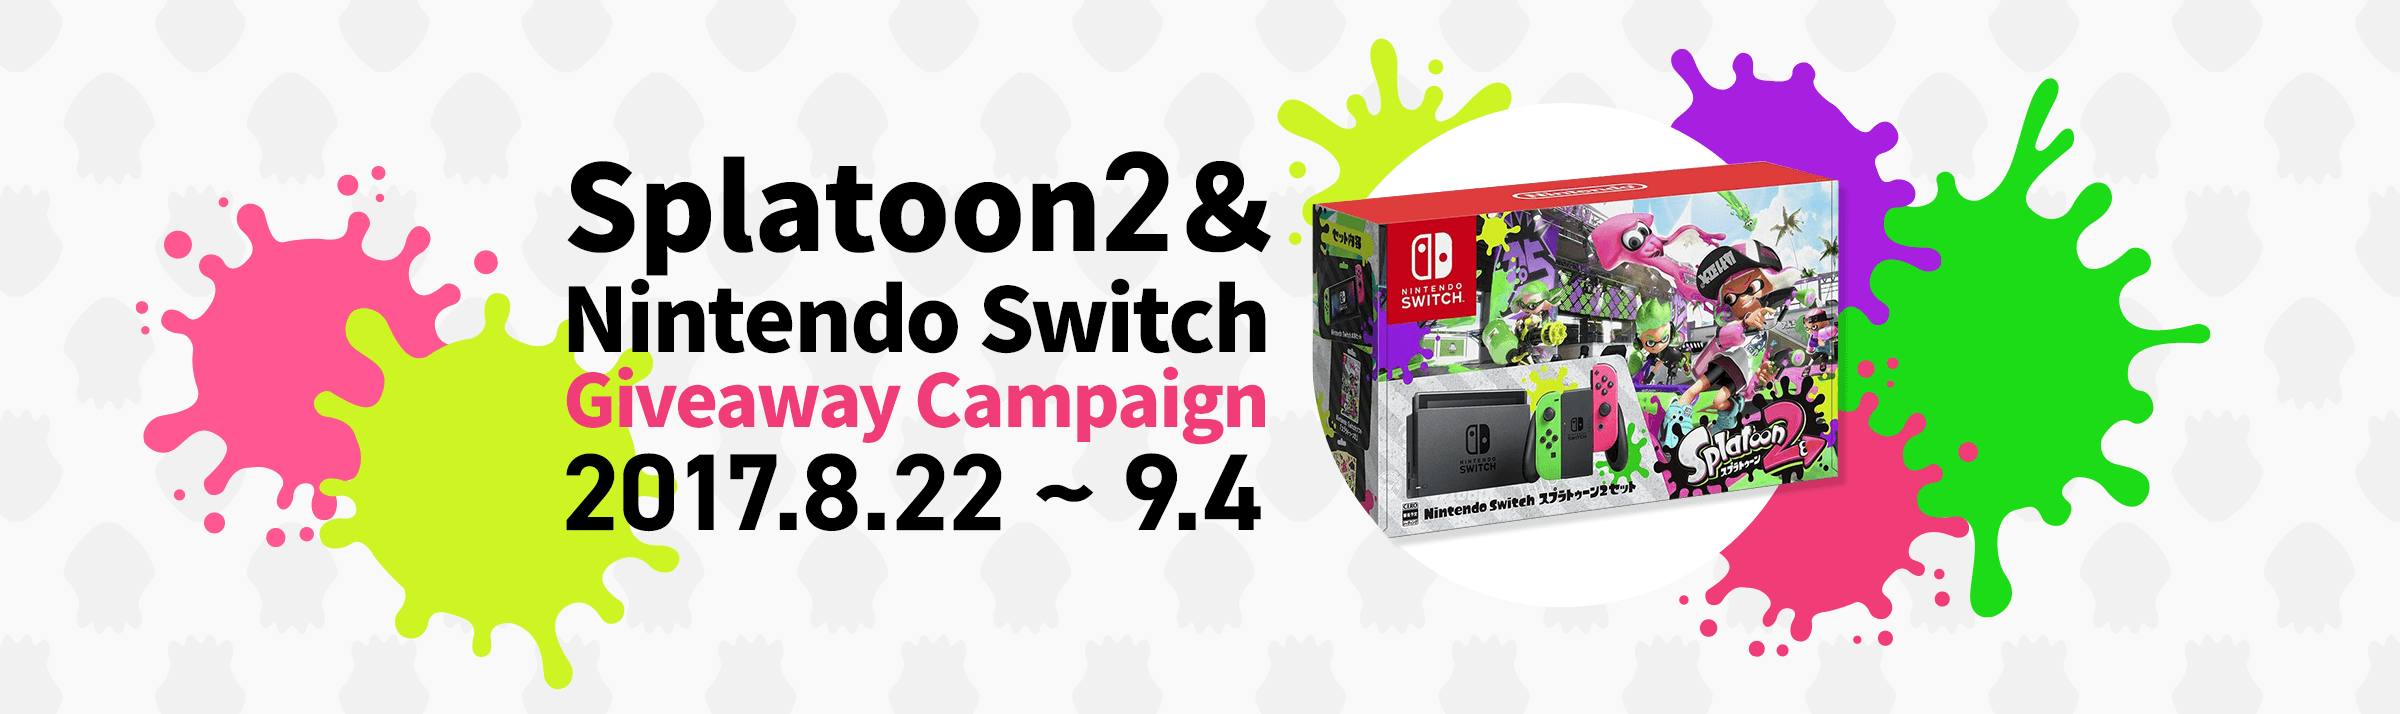 Splatoon 2 & Nintendo Switch Giveaway Campaign